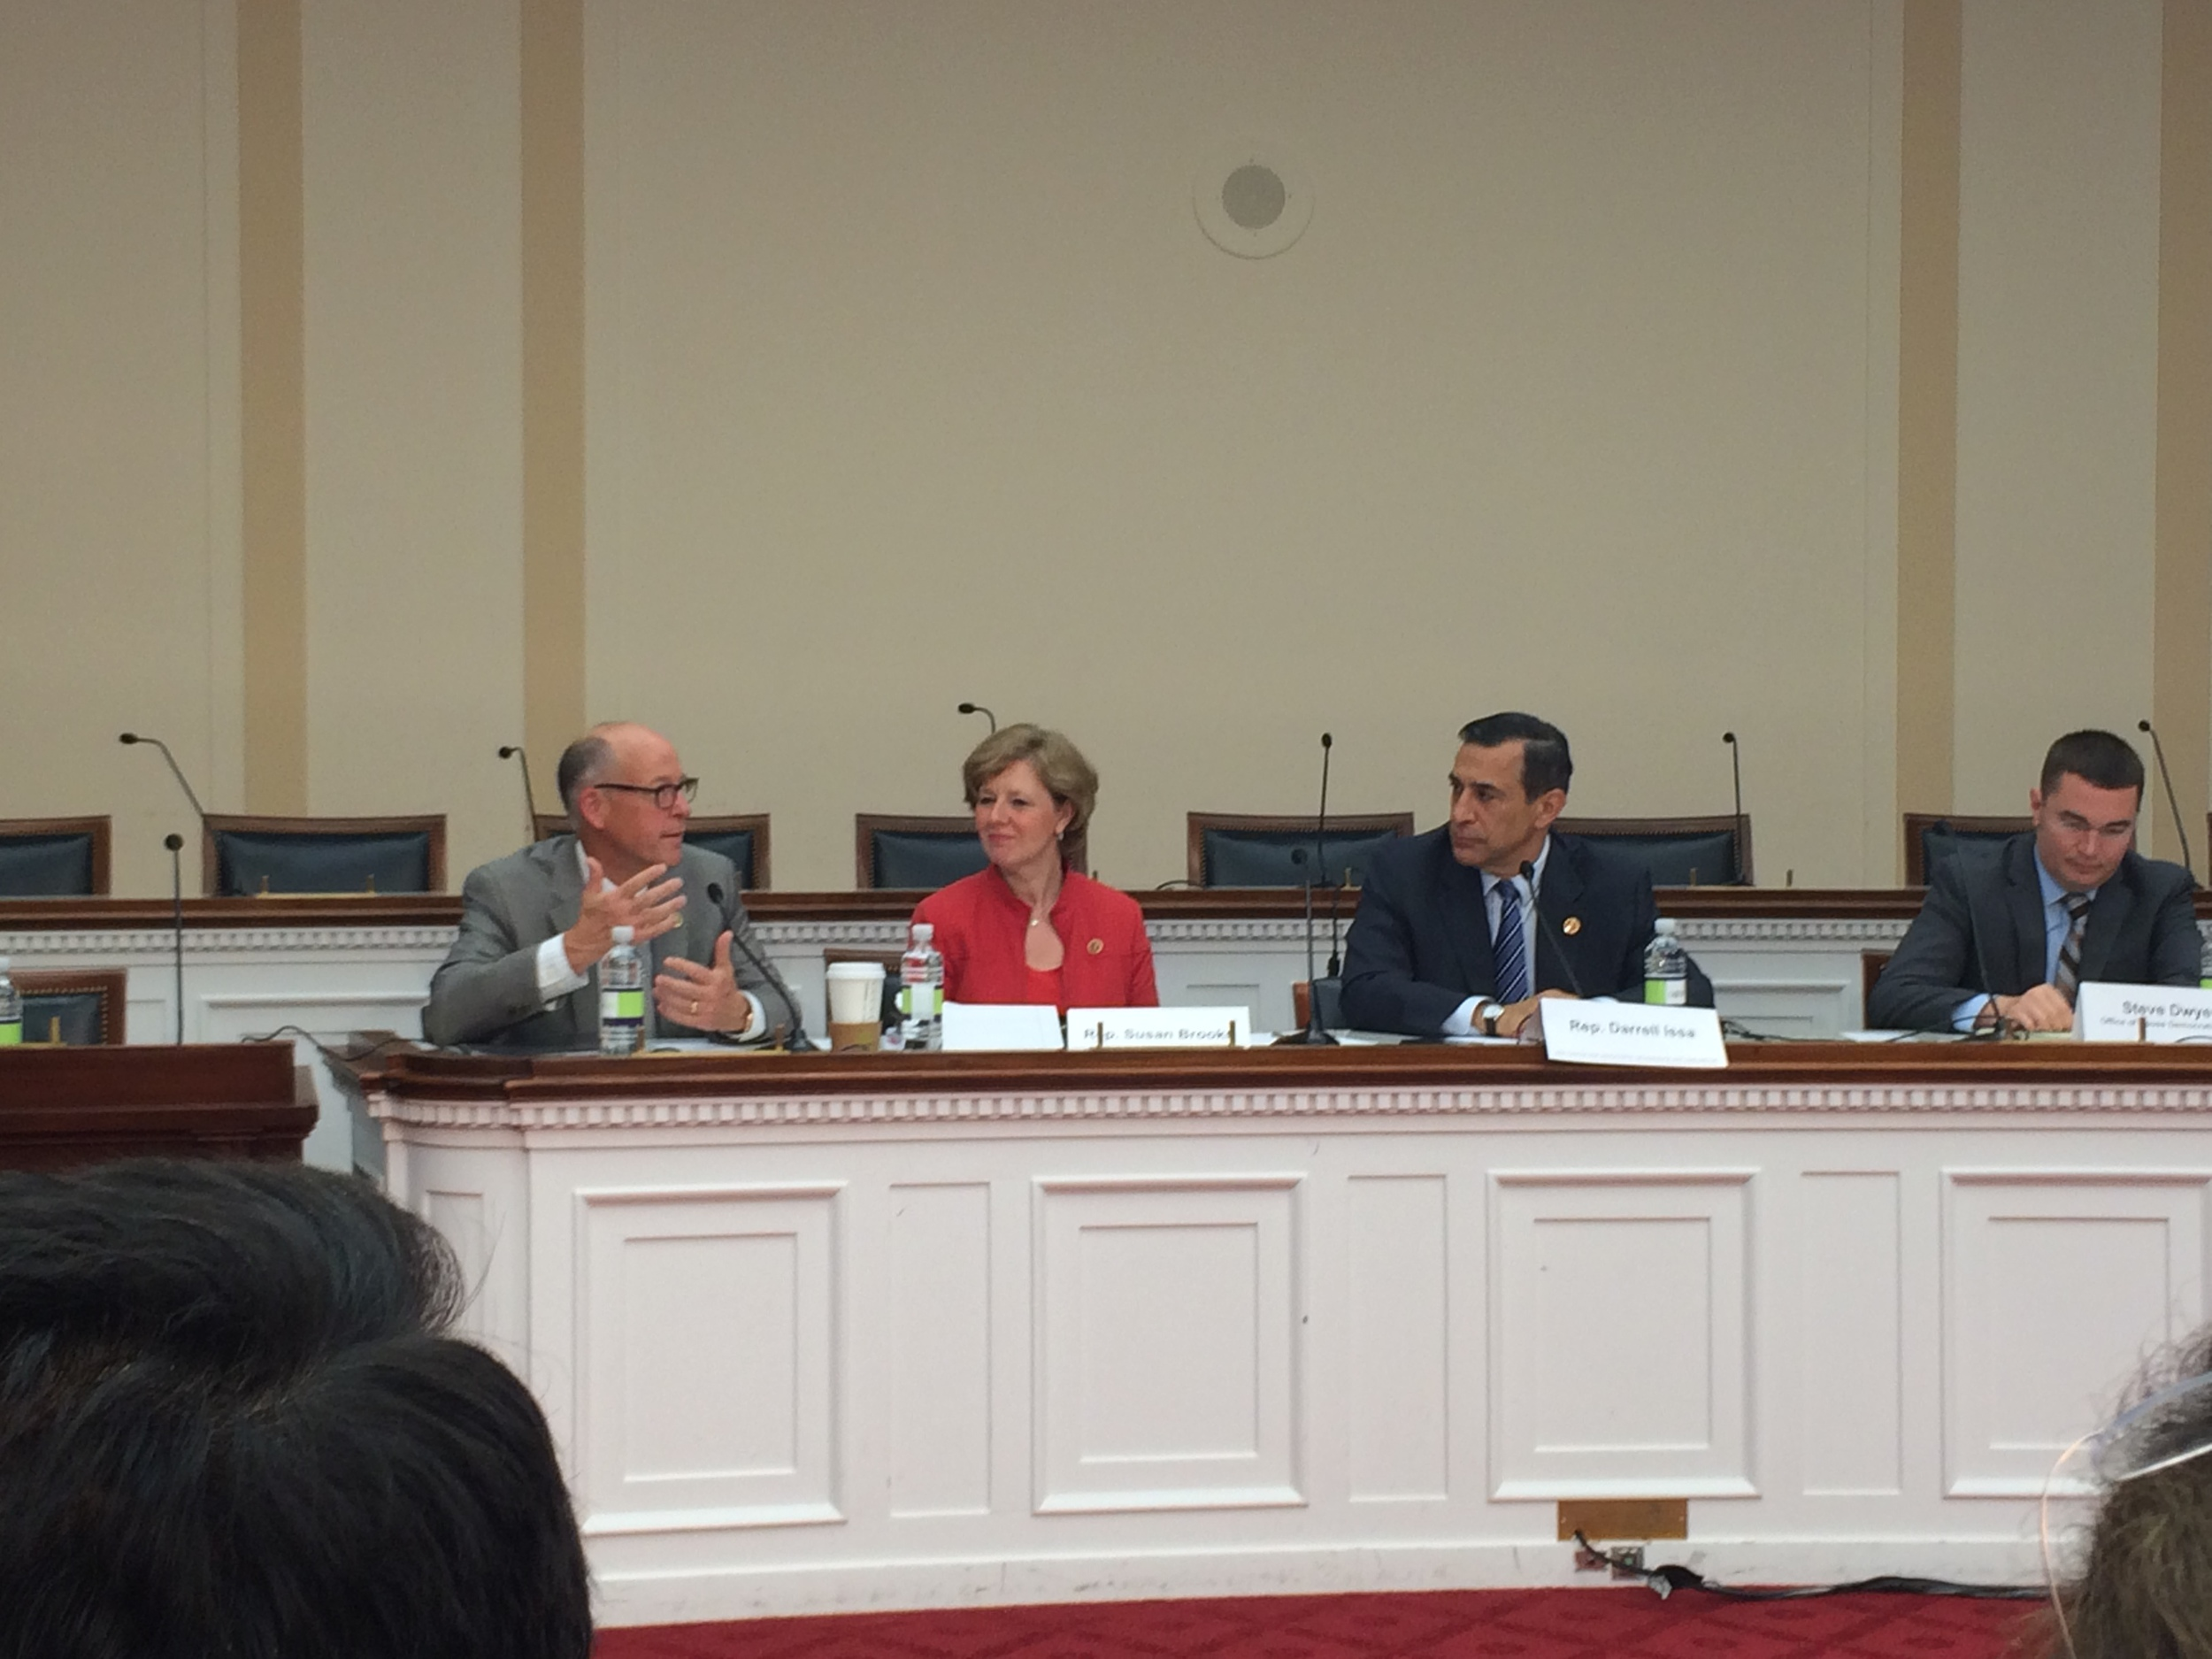 Reps. Greg Walden (R-OR), Susan Brooks (R-IN) and Darrell Issa (R-CA) sit among Congressional staffers at the final #Hack4Congress event.